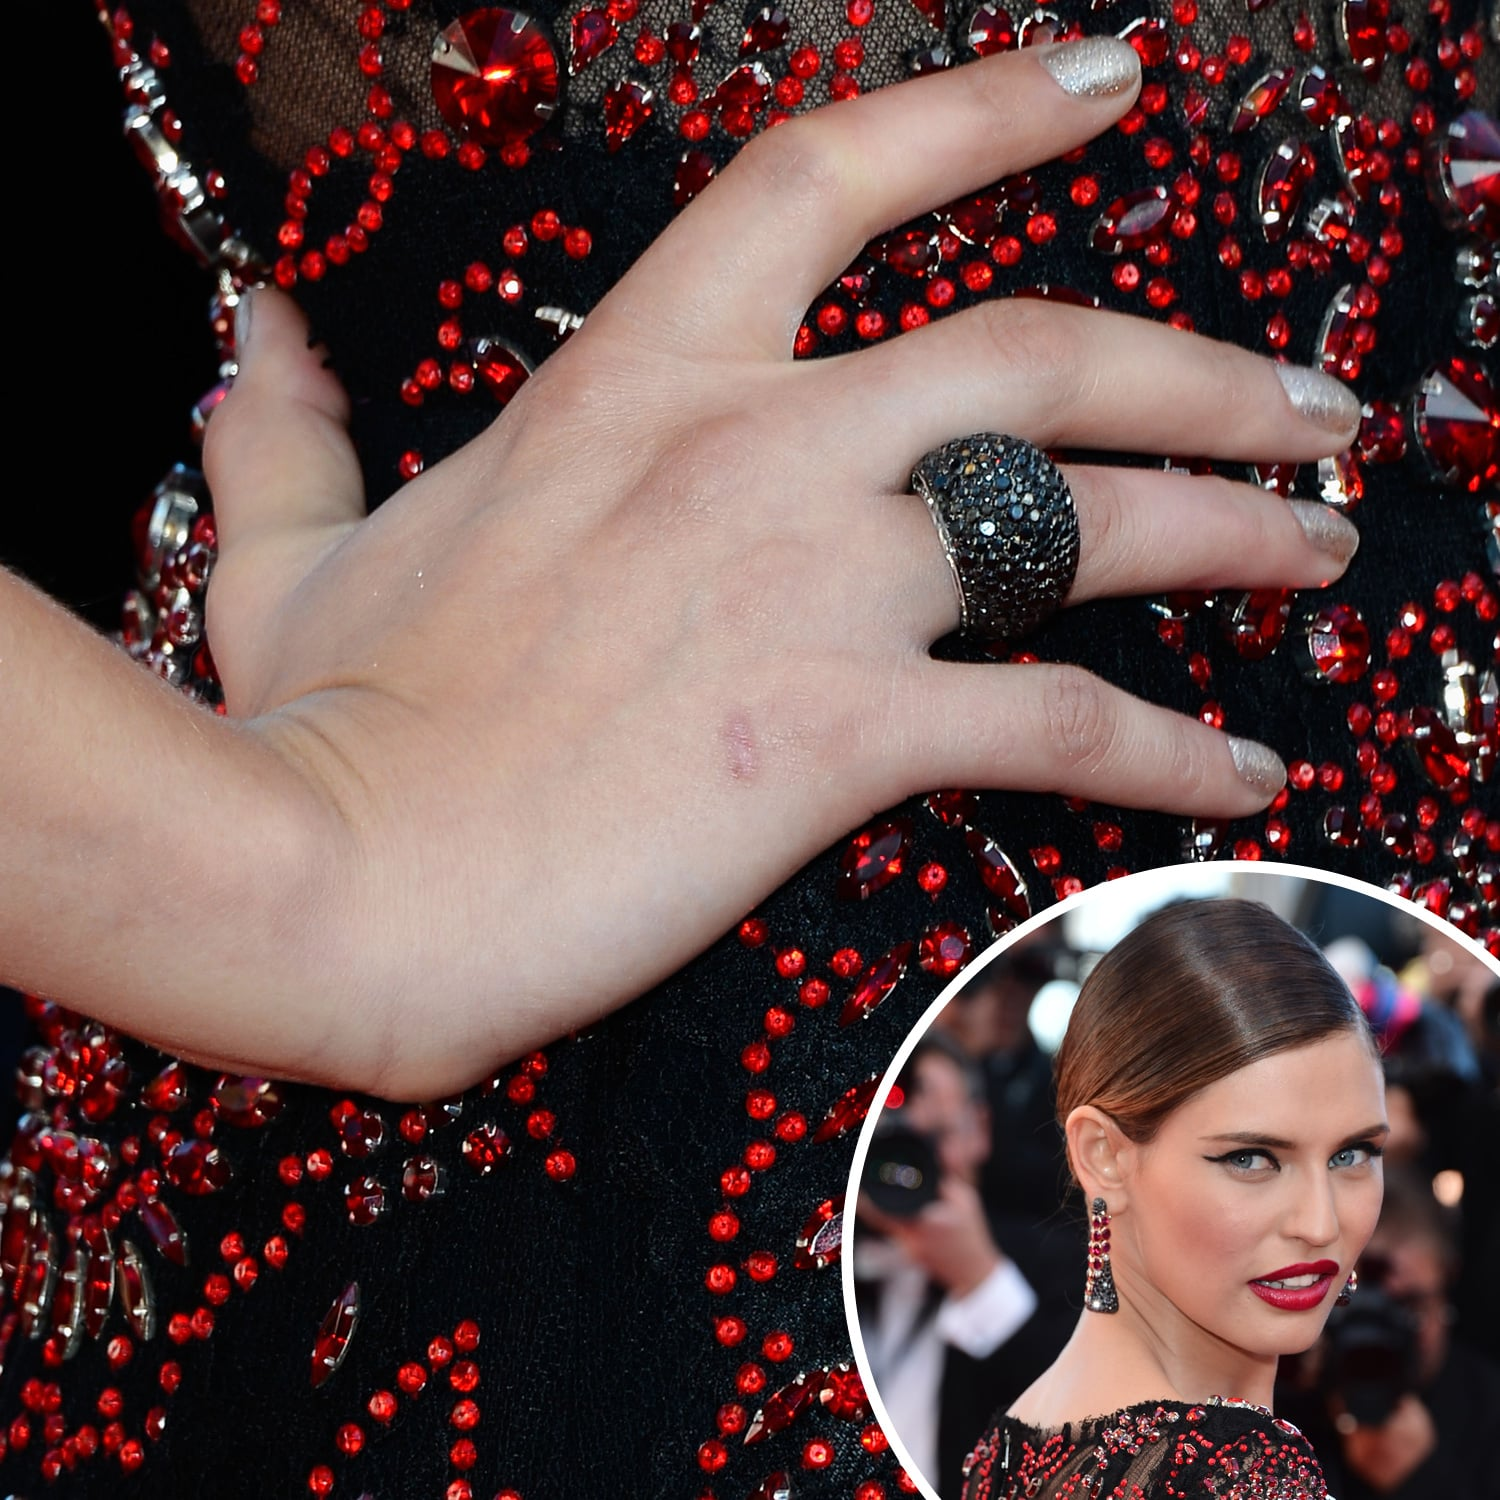 Bianca Balti was spotted in an ornate red-and-black gown, which the model accented with a sparkling silver nail polish.